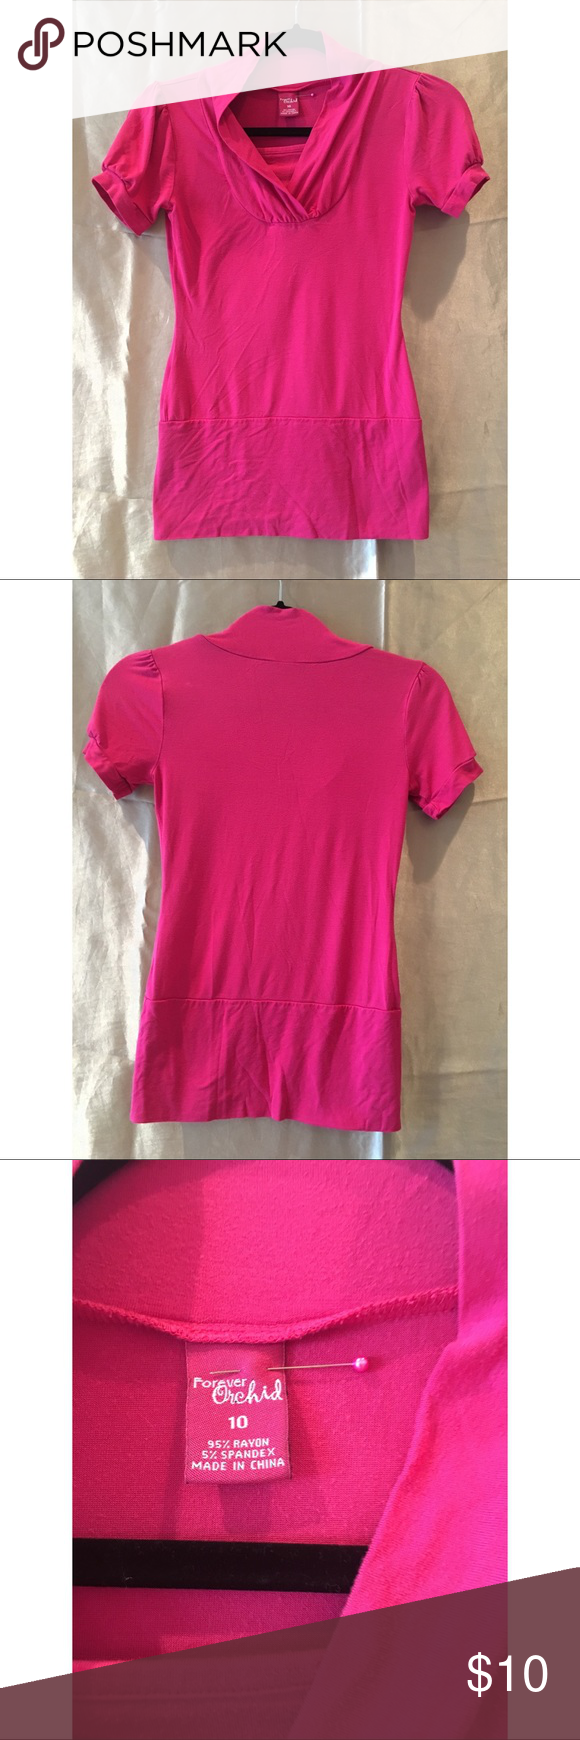 897e1e39 Pretty pink shirt Forever Orchid Brand, tight fitting and has a nice design  at the collar Forever Orchid Tops